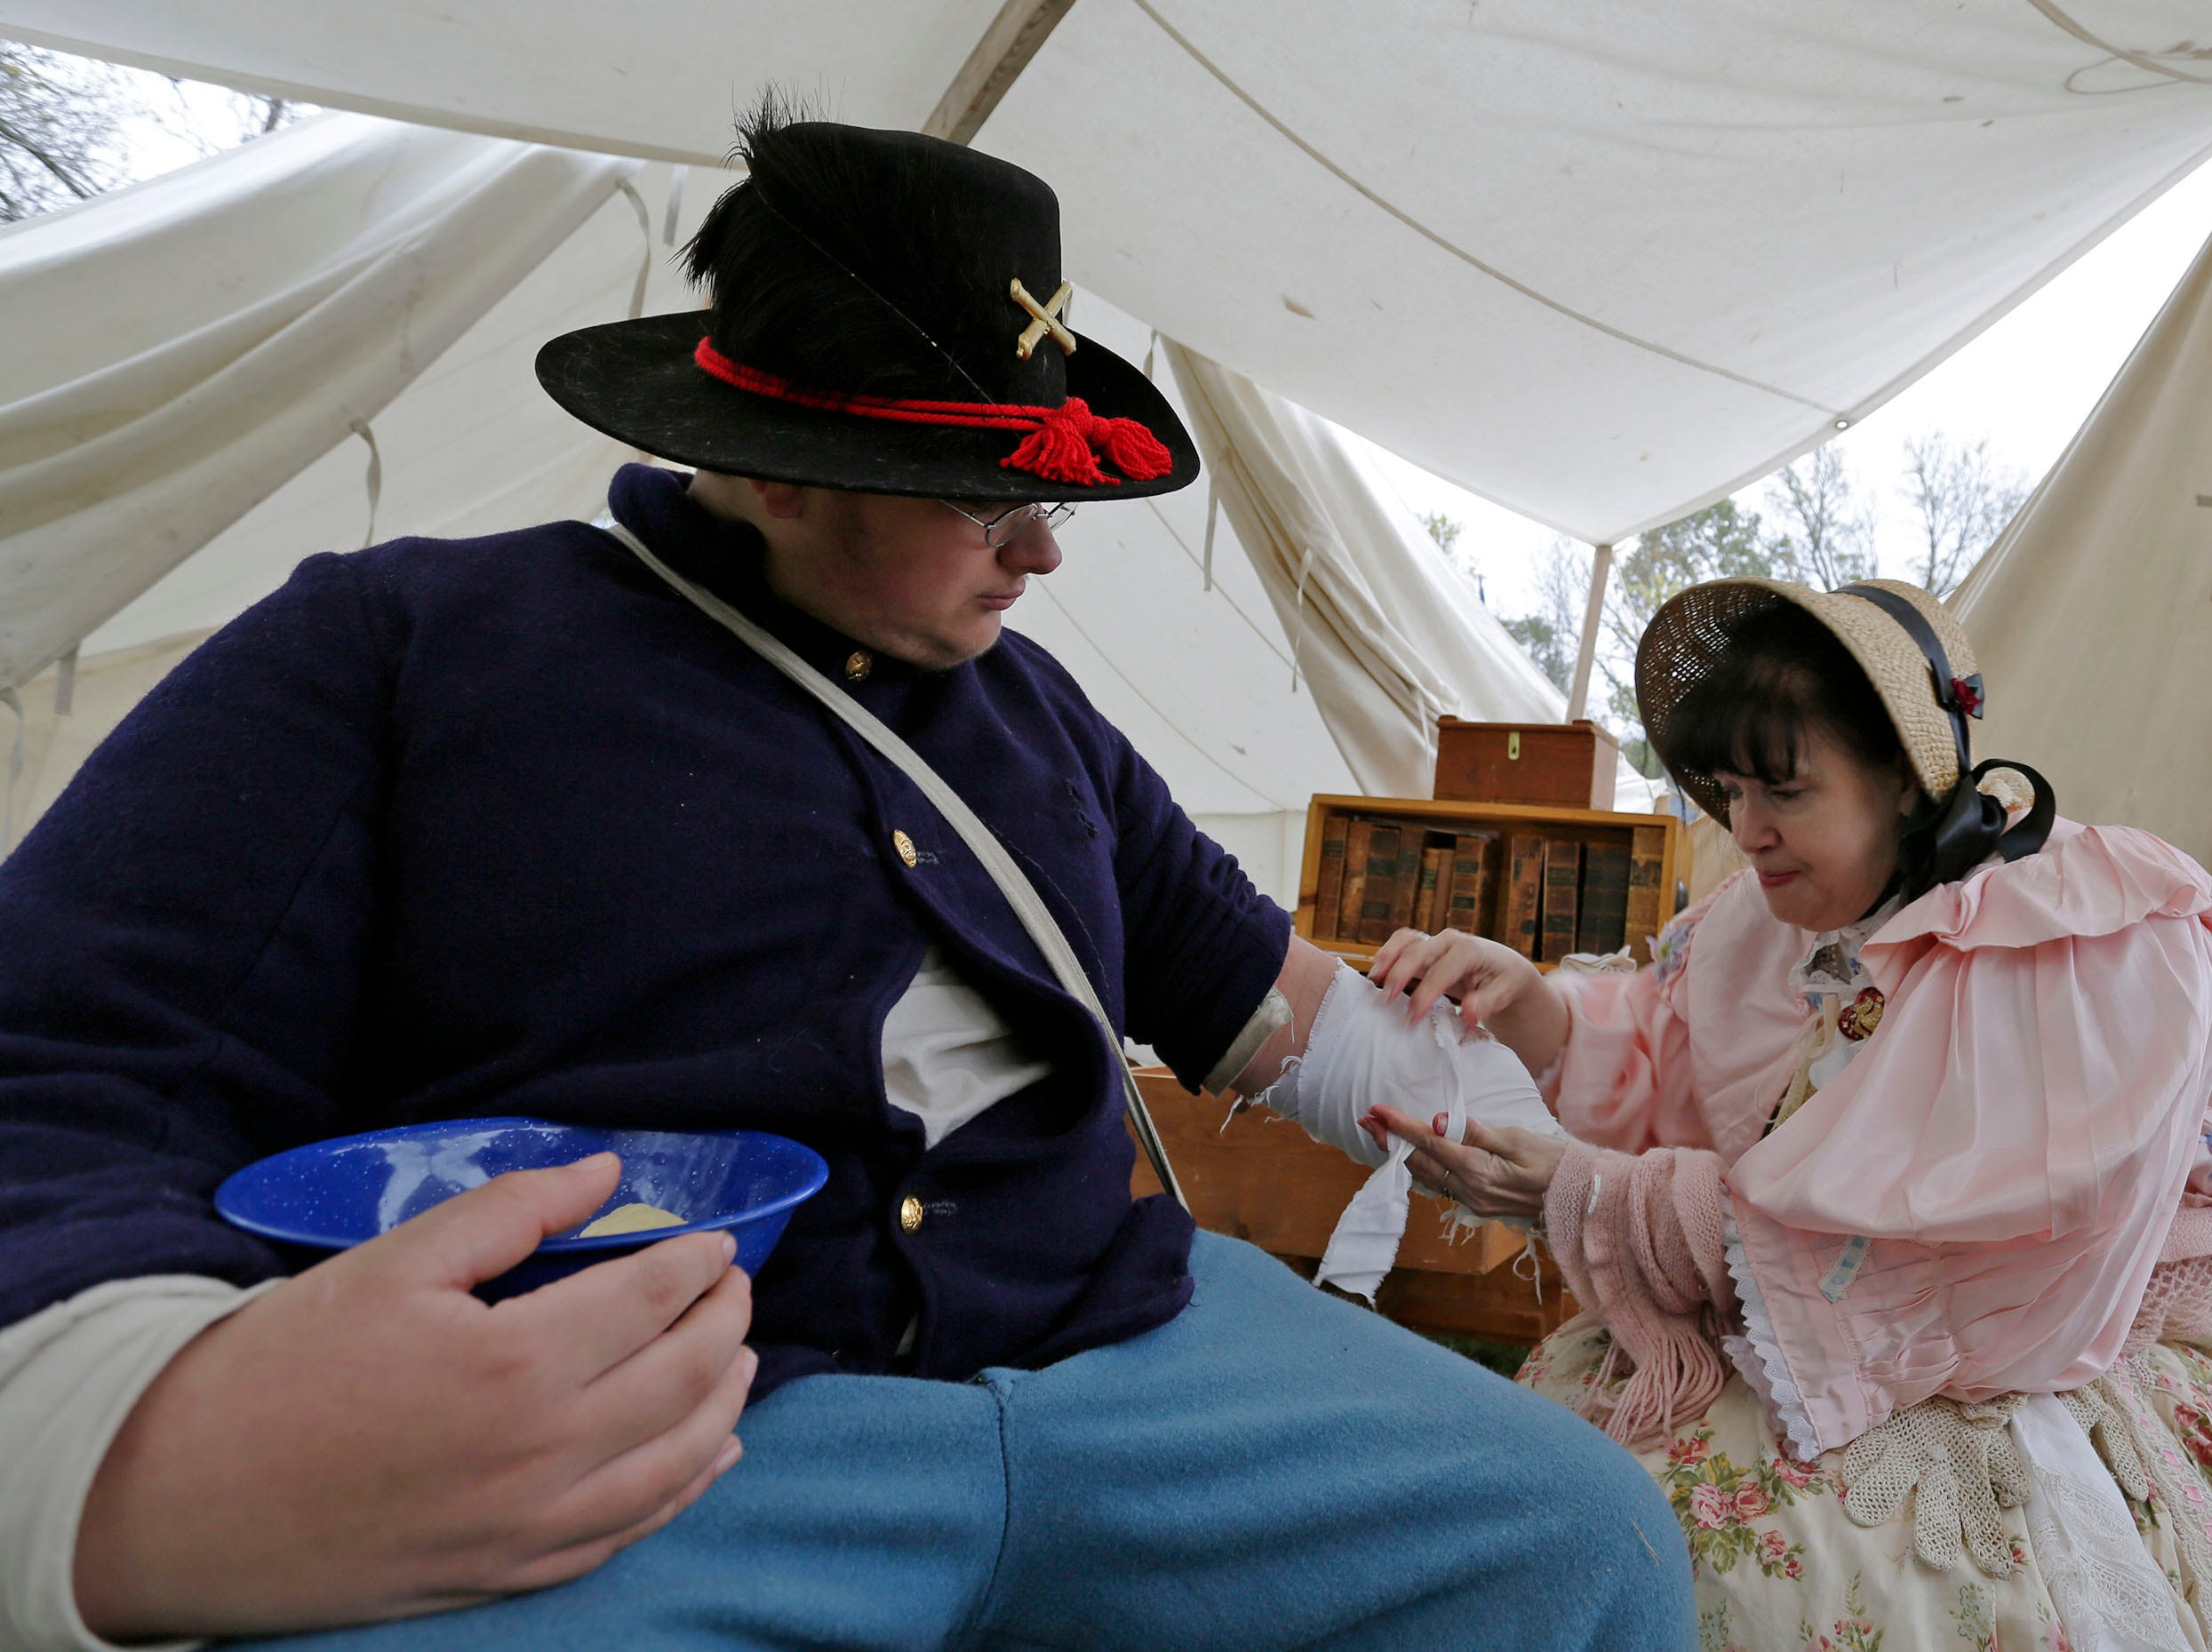 Reenactor Landon Zeichert of Tomah gets patched up by an actress portraying Dr. Rebecca Chisholm during the Civil War Weekend at the Wade House, Saturday September 29, 2018, in Greenbush, Wis.